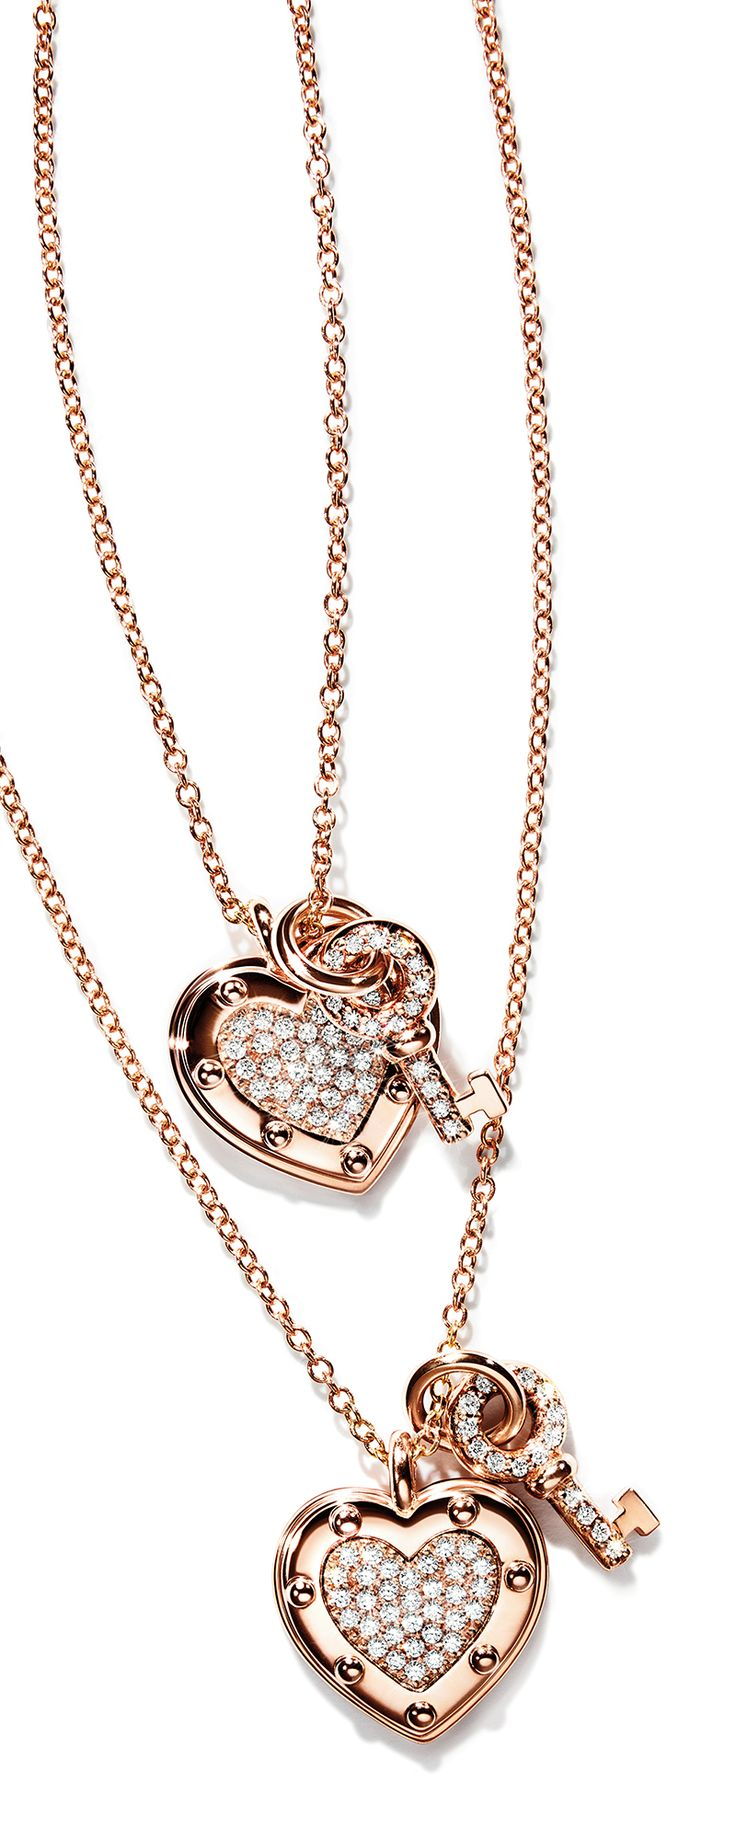 Return to Tiffany® Love heart tag key pendants in 18k rose gold with diamonds.